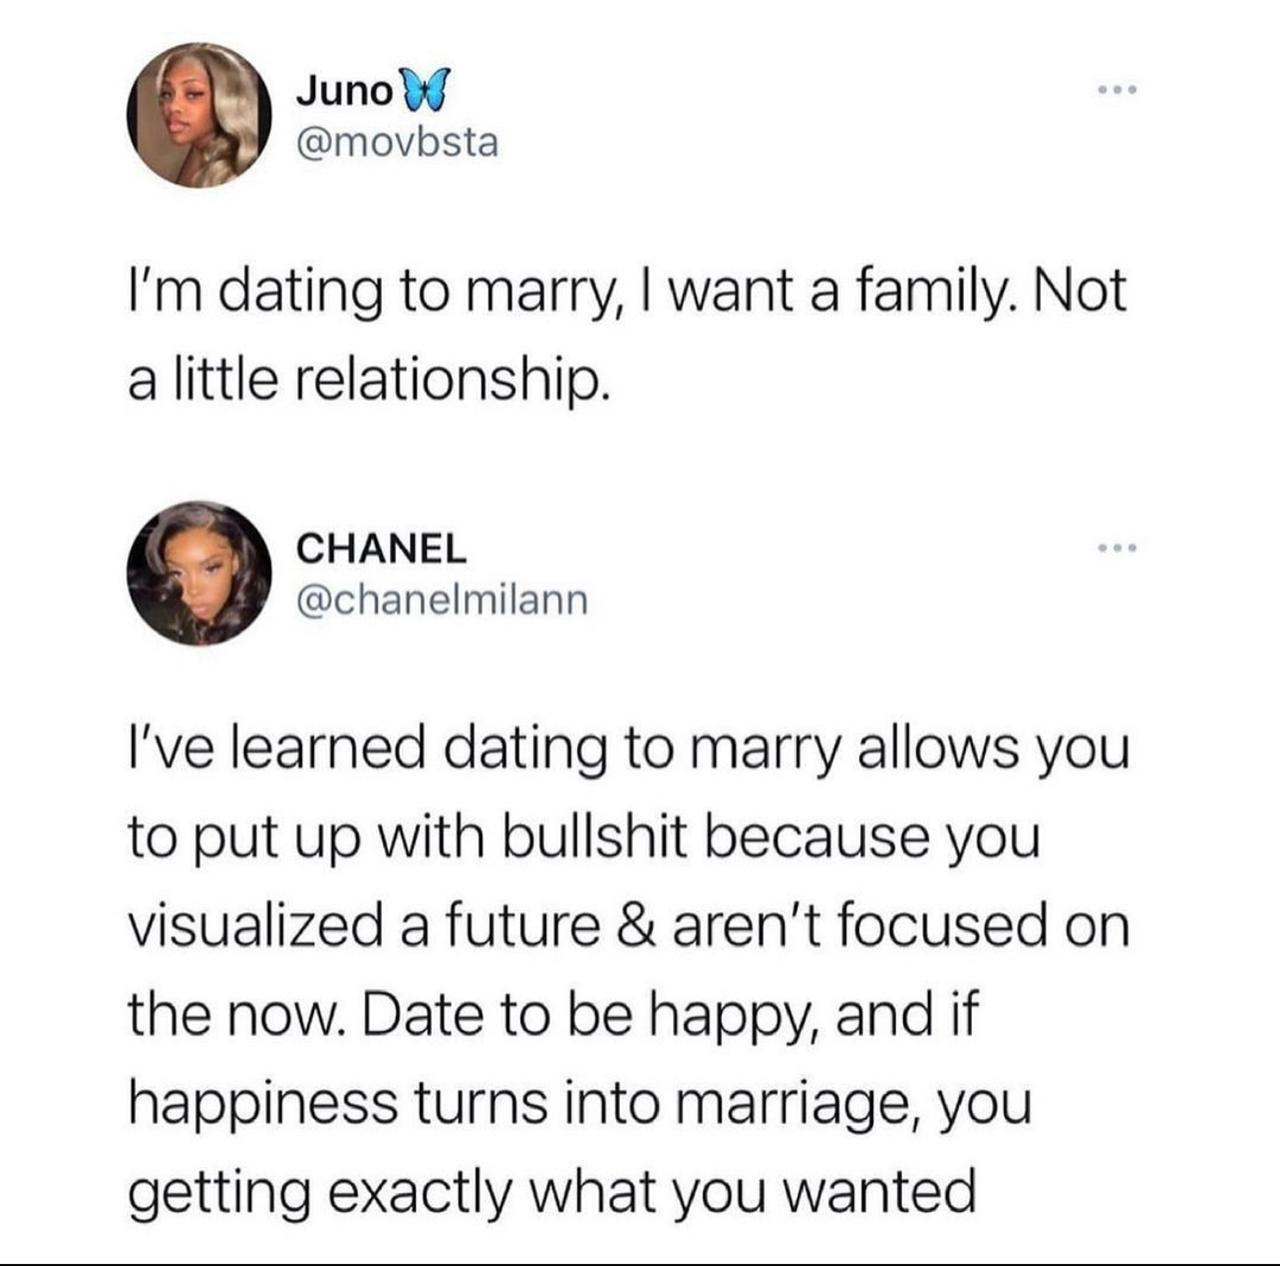 """Juno"""" @movbsta I'm Dating To Marry, I Want A Family. Not A Little Relationship. CHANEL @chanelmilann I've Learned Dating To Marry Allows You To Put Up With Bullshit Because You Visualized A Future & Aren't Focused On The Now. Date To Be Happy, And If Happiness Turns Into Marriage, You Getting Exactly What https://inspirational.ly"""